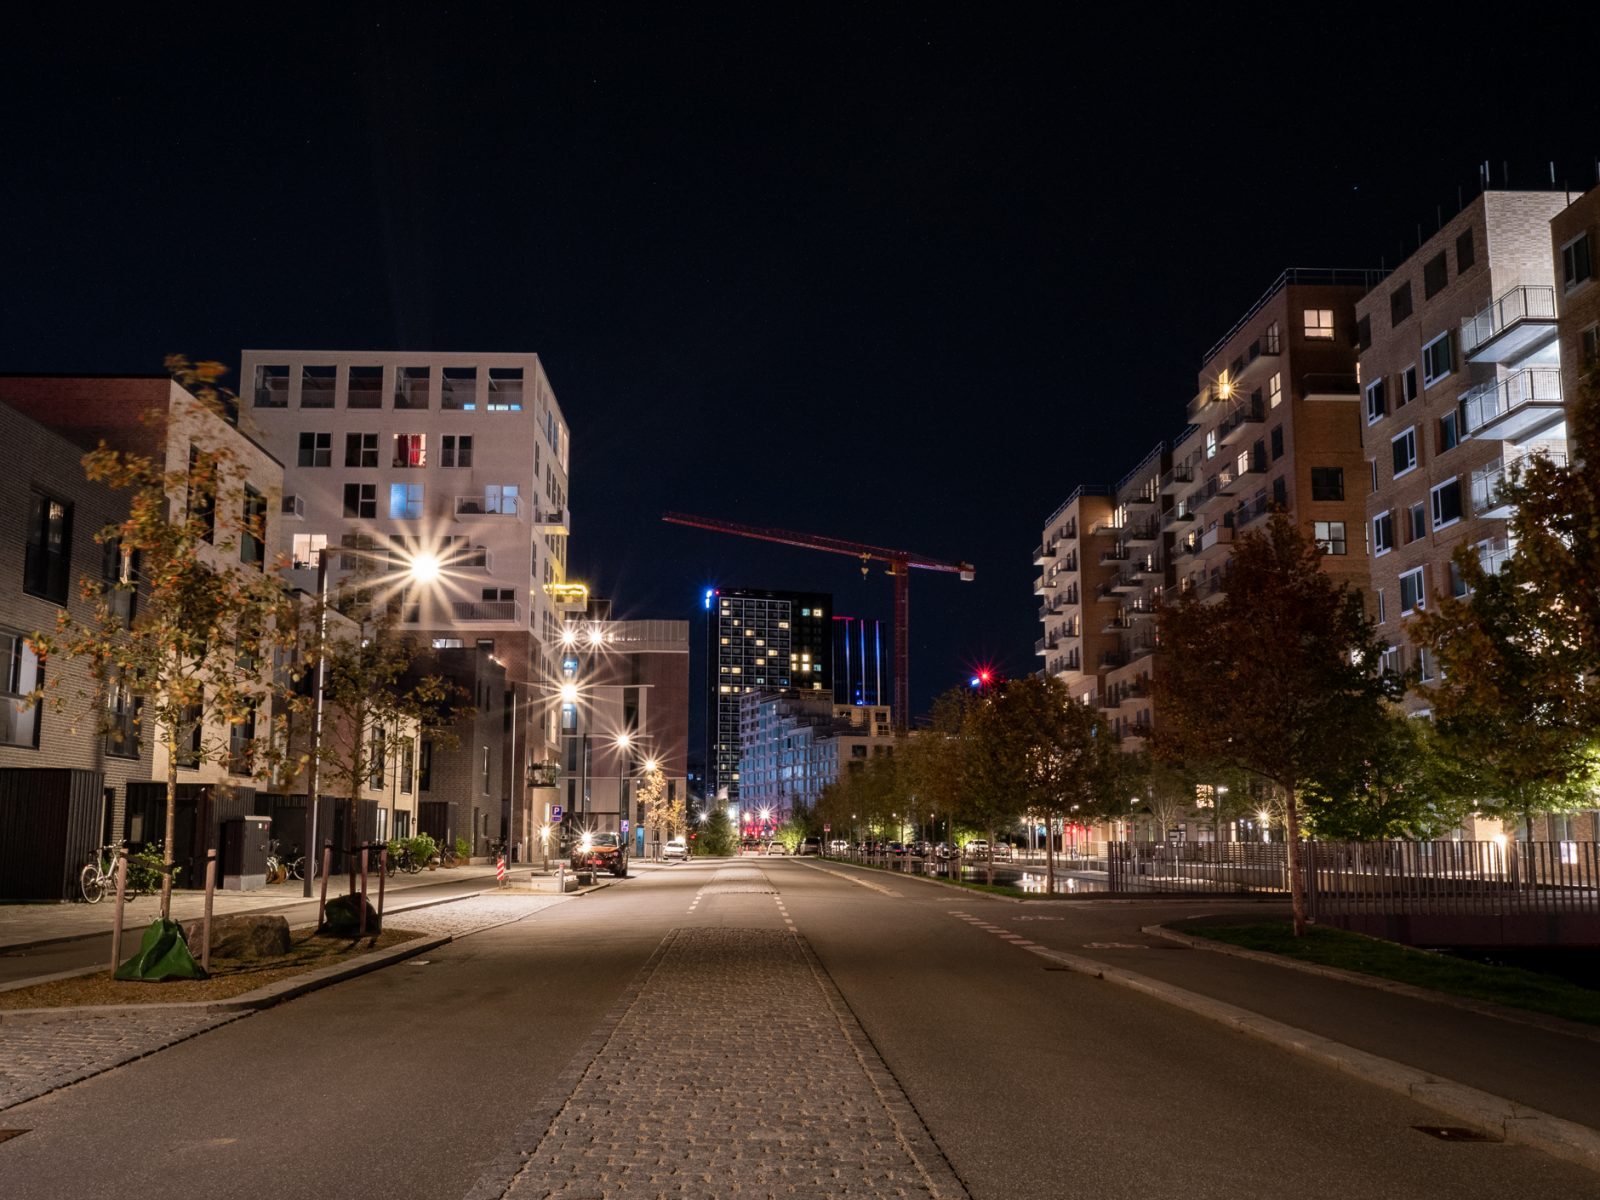 The Royal Arena neighborhood at night in Ørestad, fall 2019, by Ørestad based photographer Stefan Grage